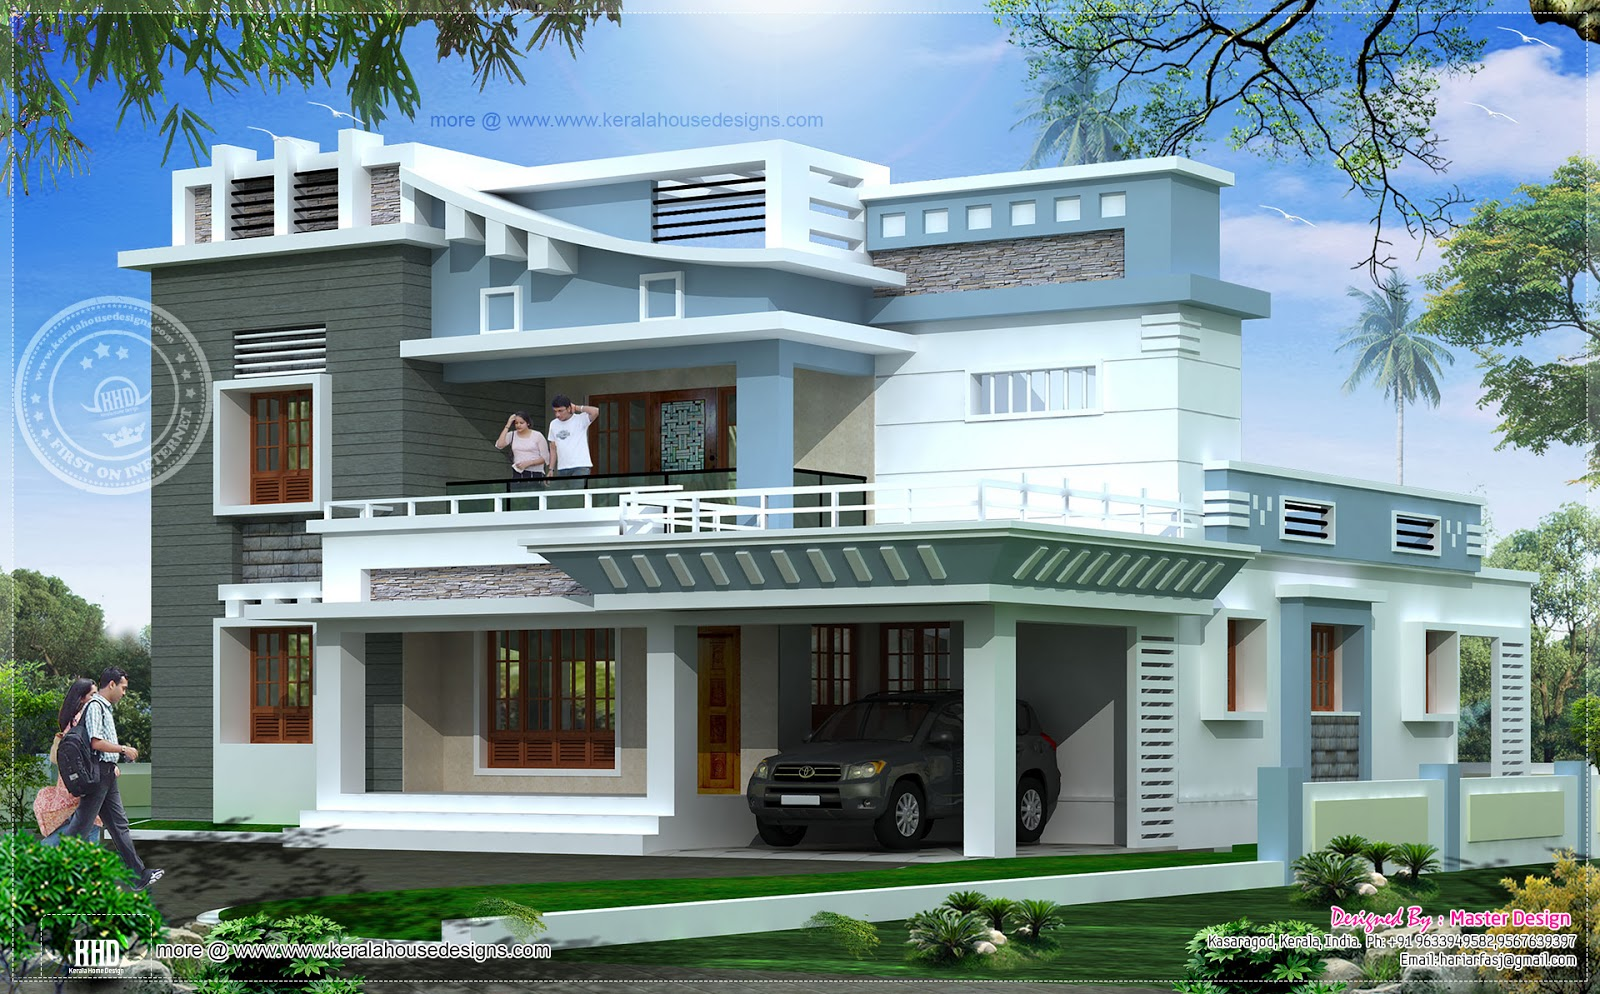 2547 square feet exterior home elevation house design plans for Home exterior designs